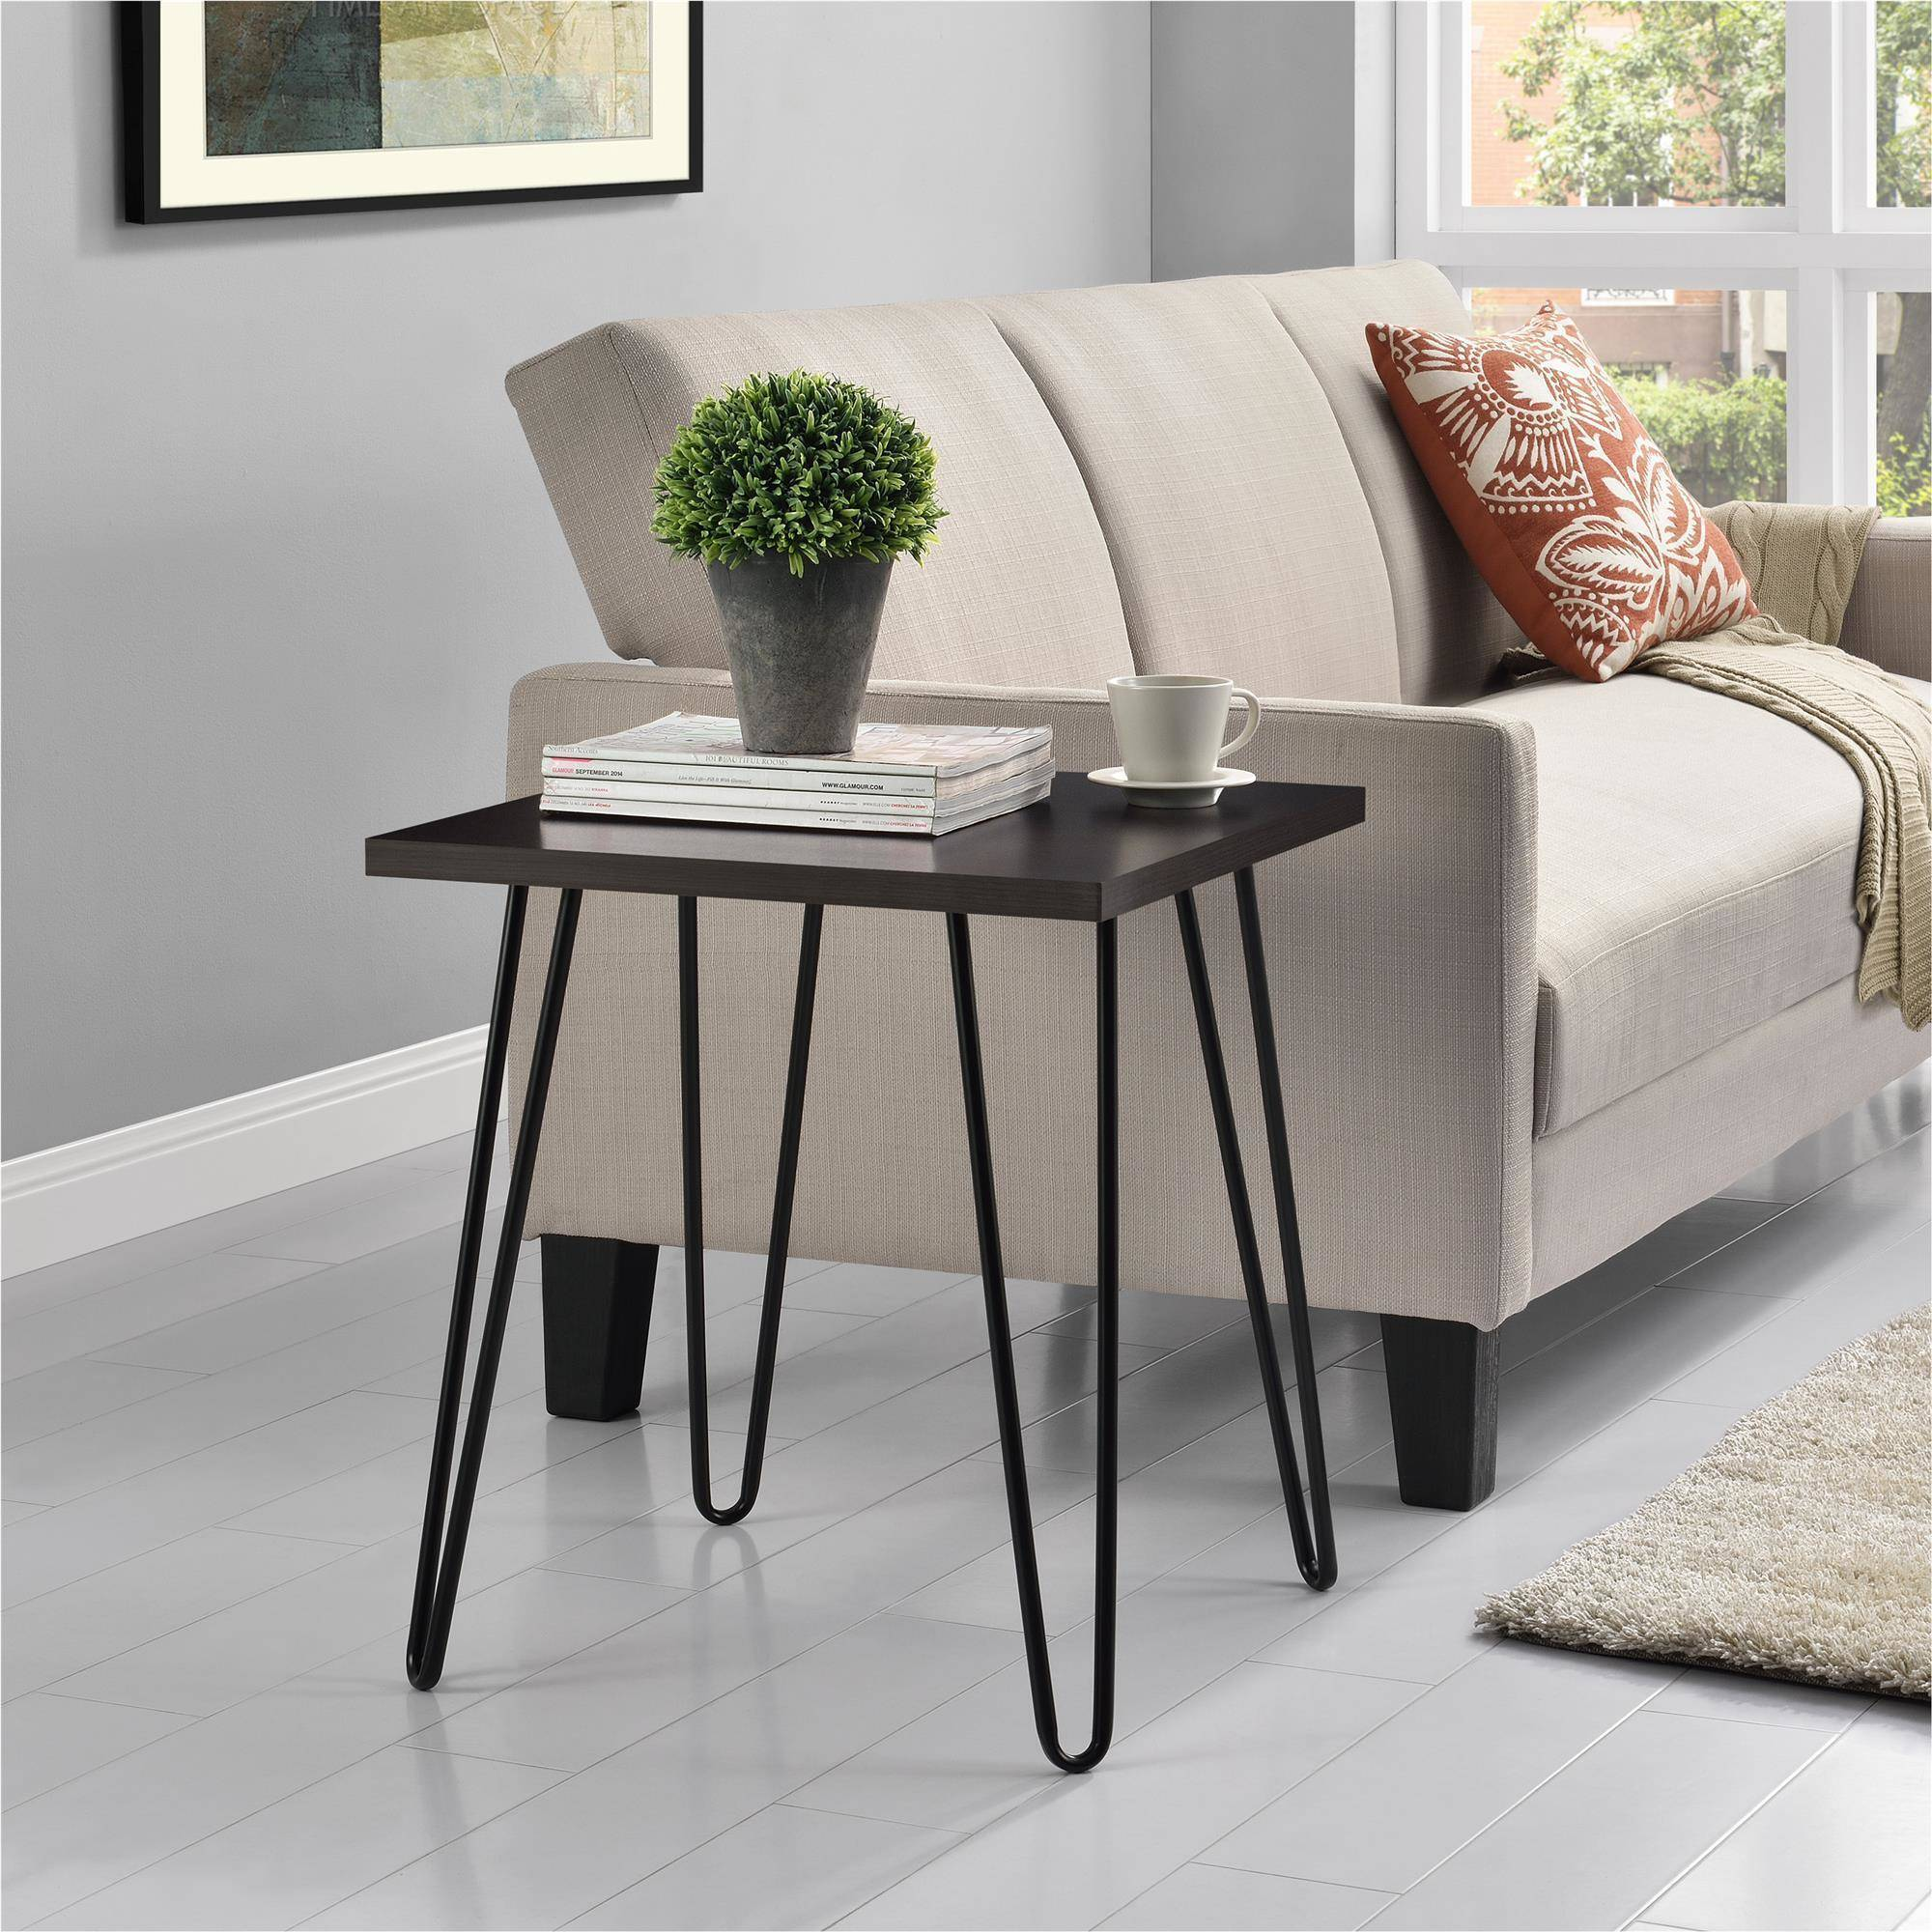 Mainstays Retro Accent Table, Multiple Colors